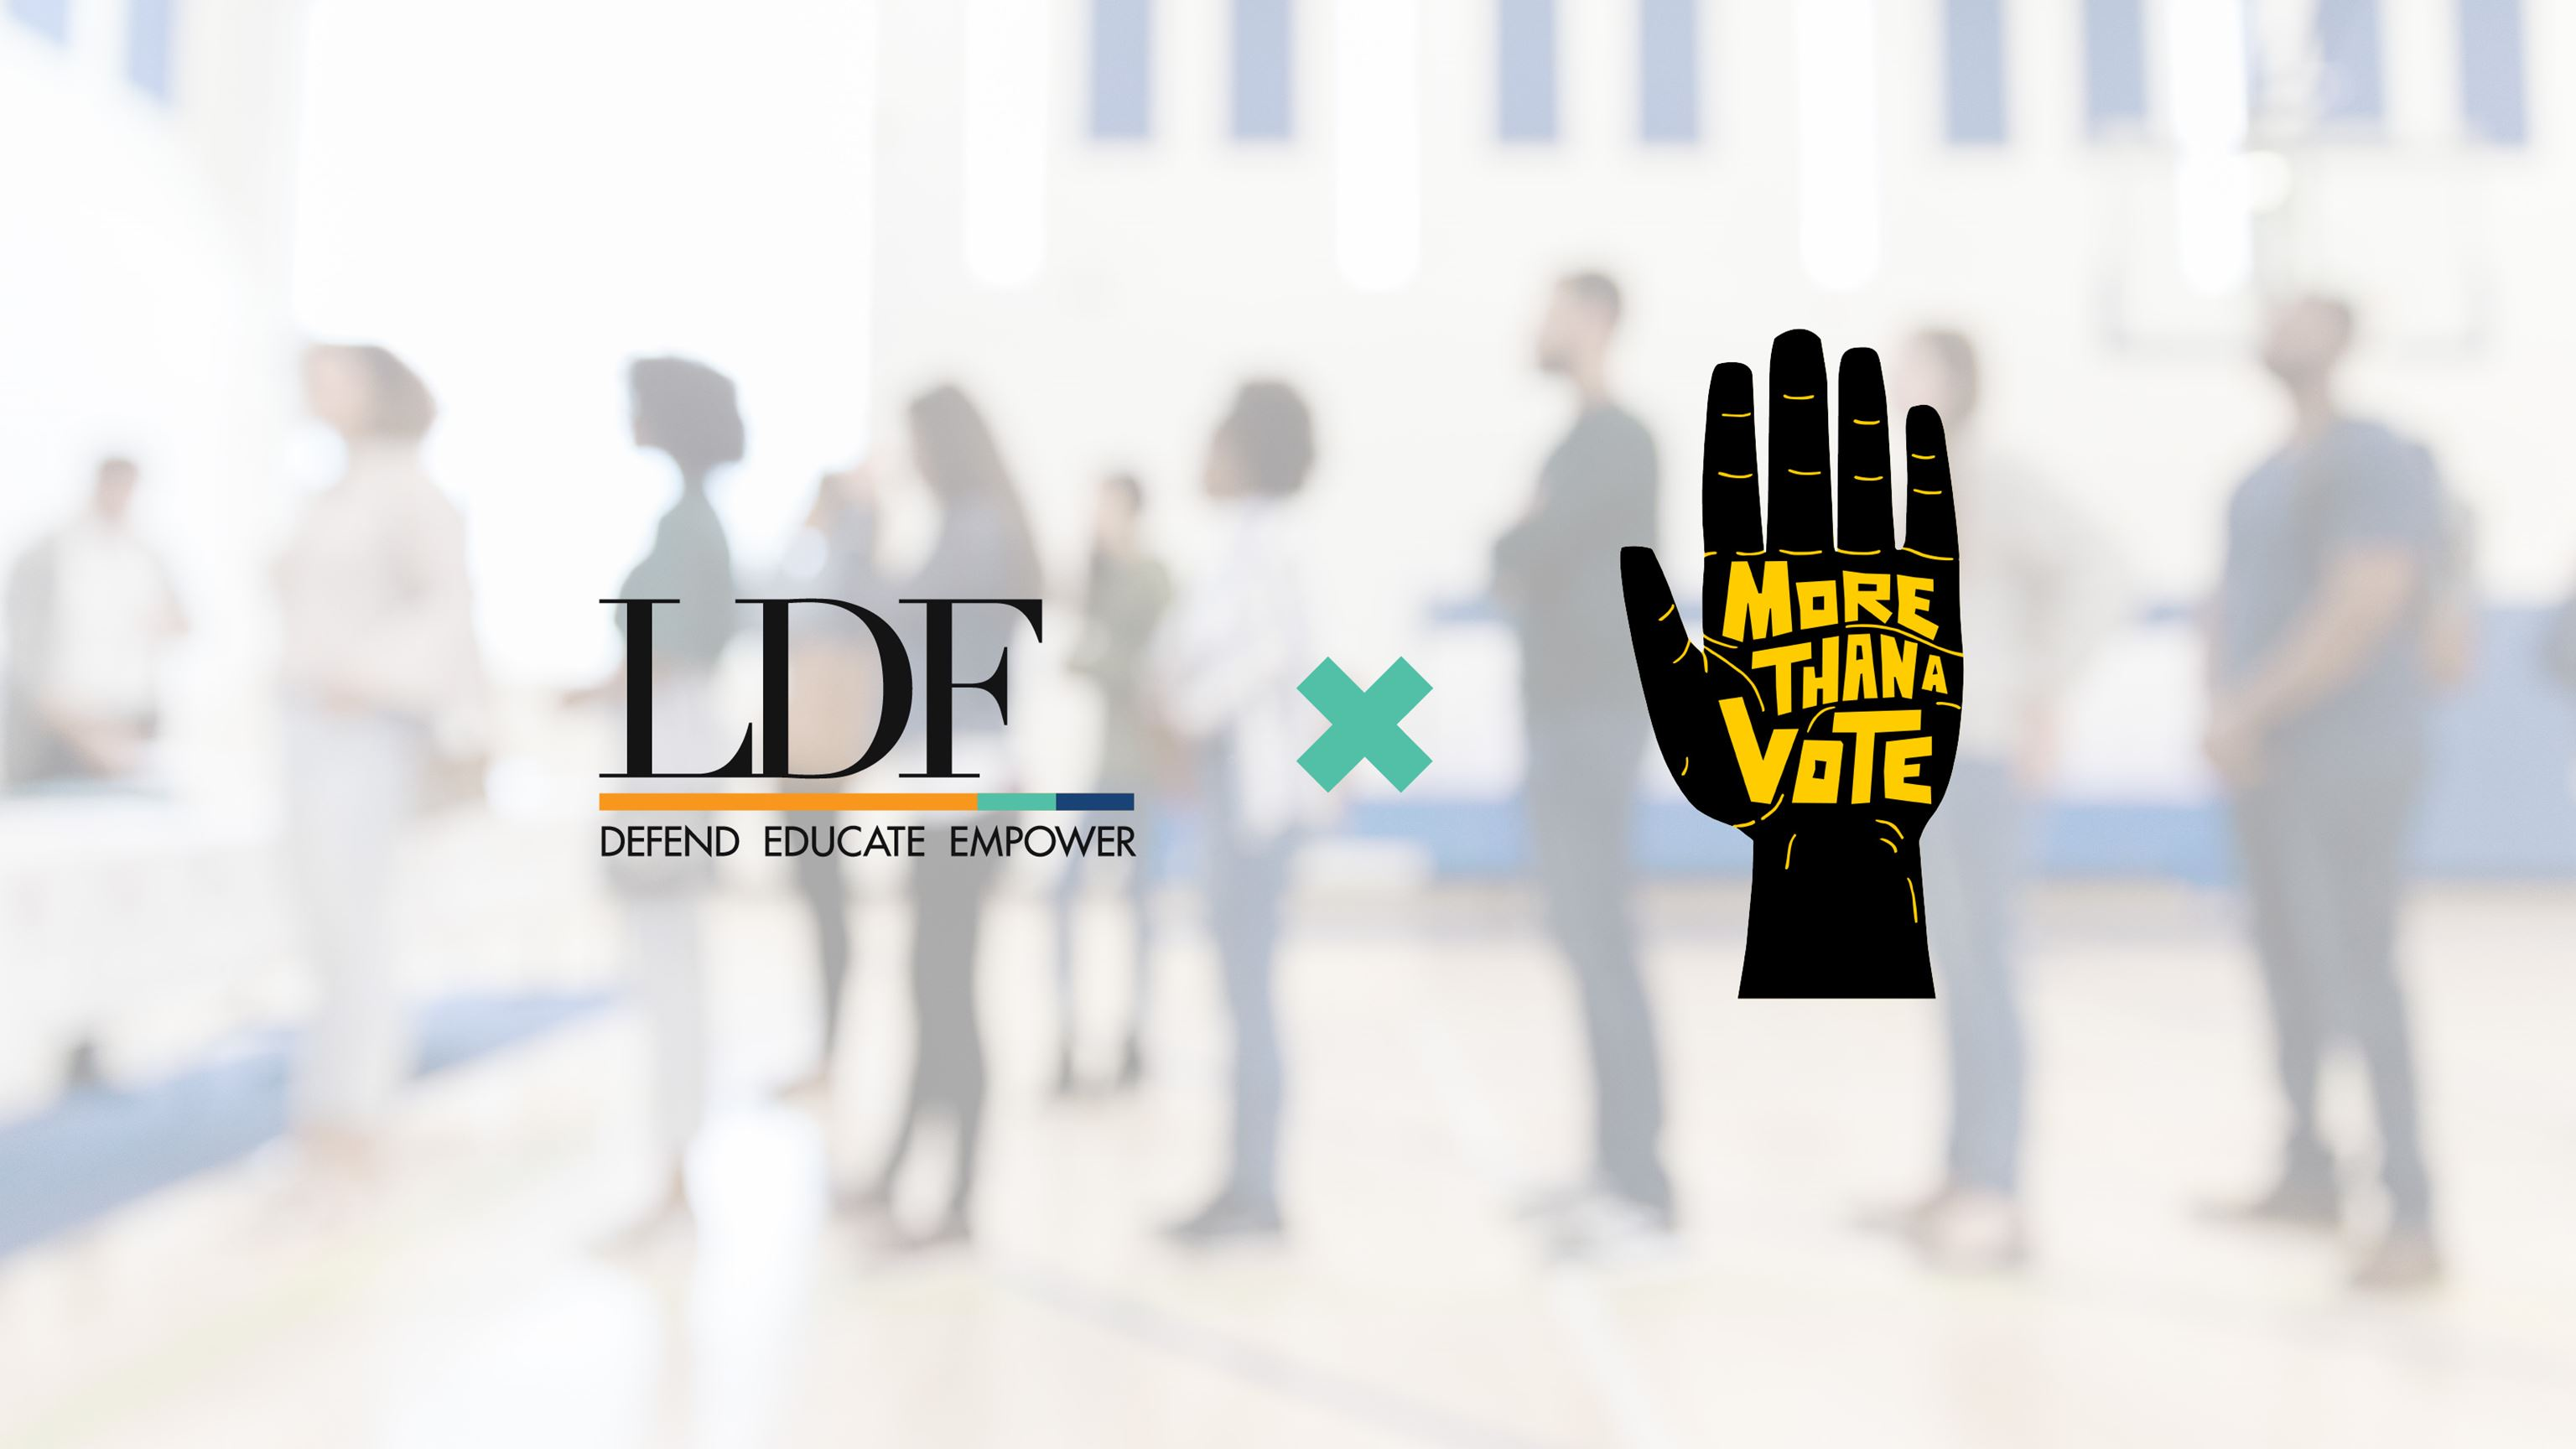 LDF and More Than A Vote logos overlaid on a defocused image of people waiting in a line to vote